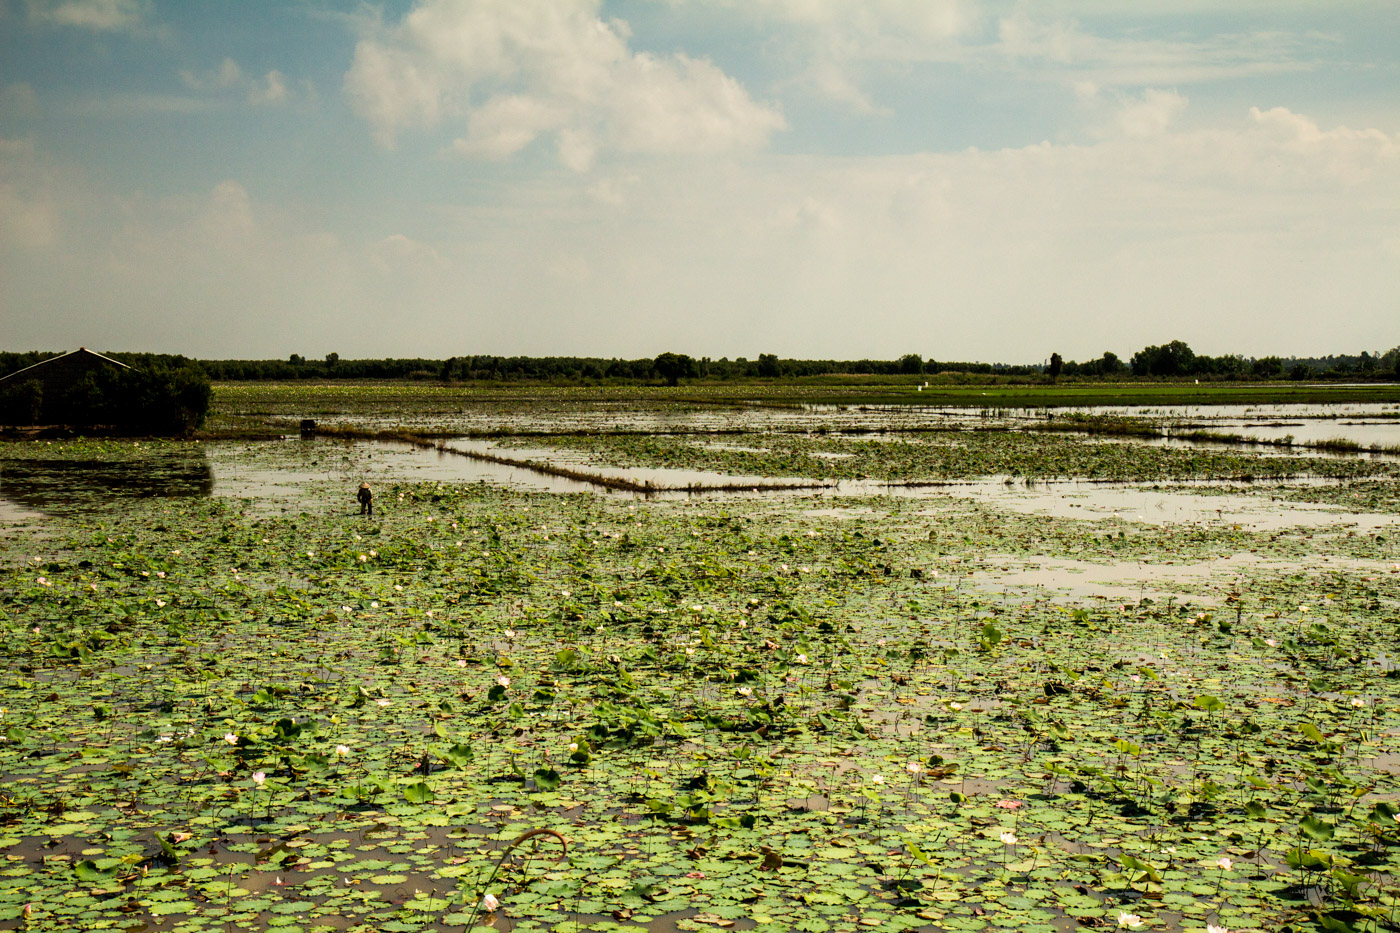 At work in the lotus fields.